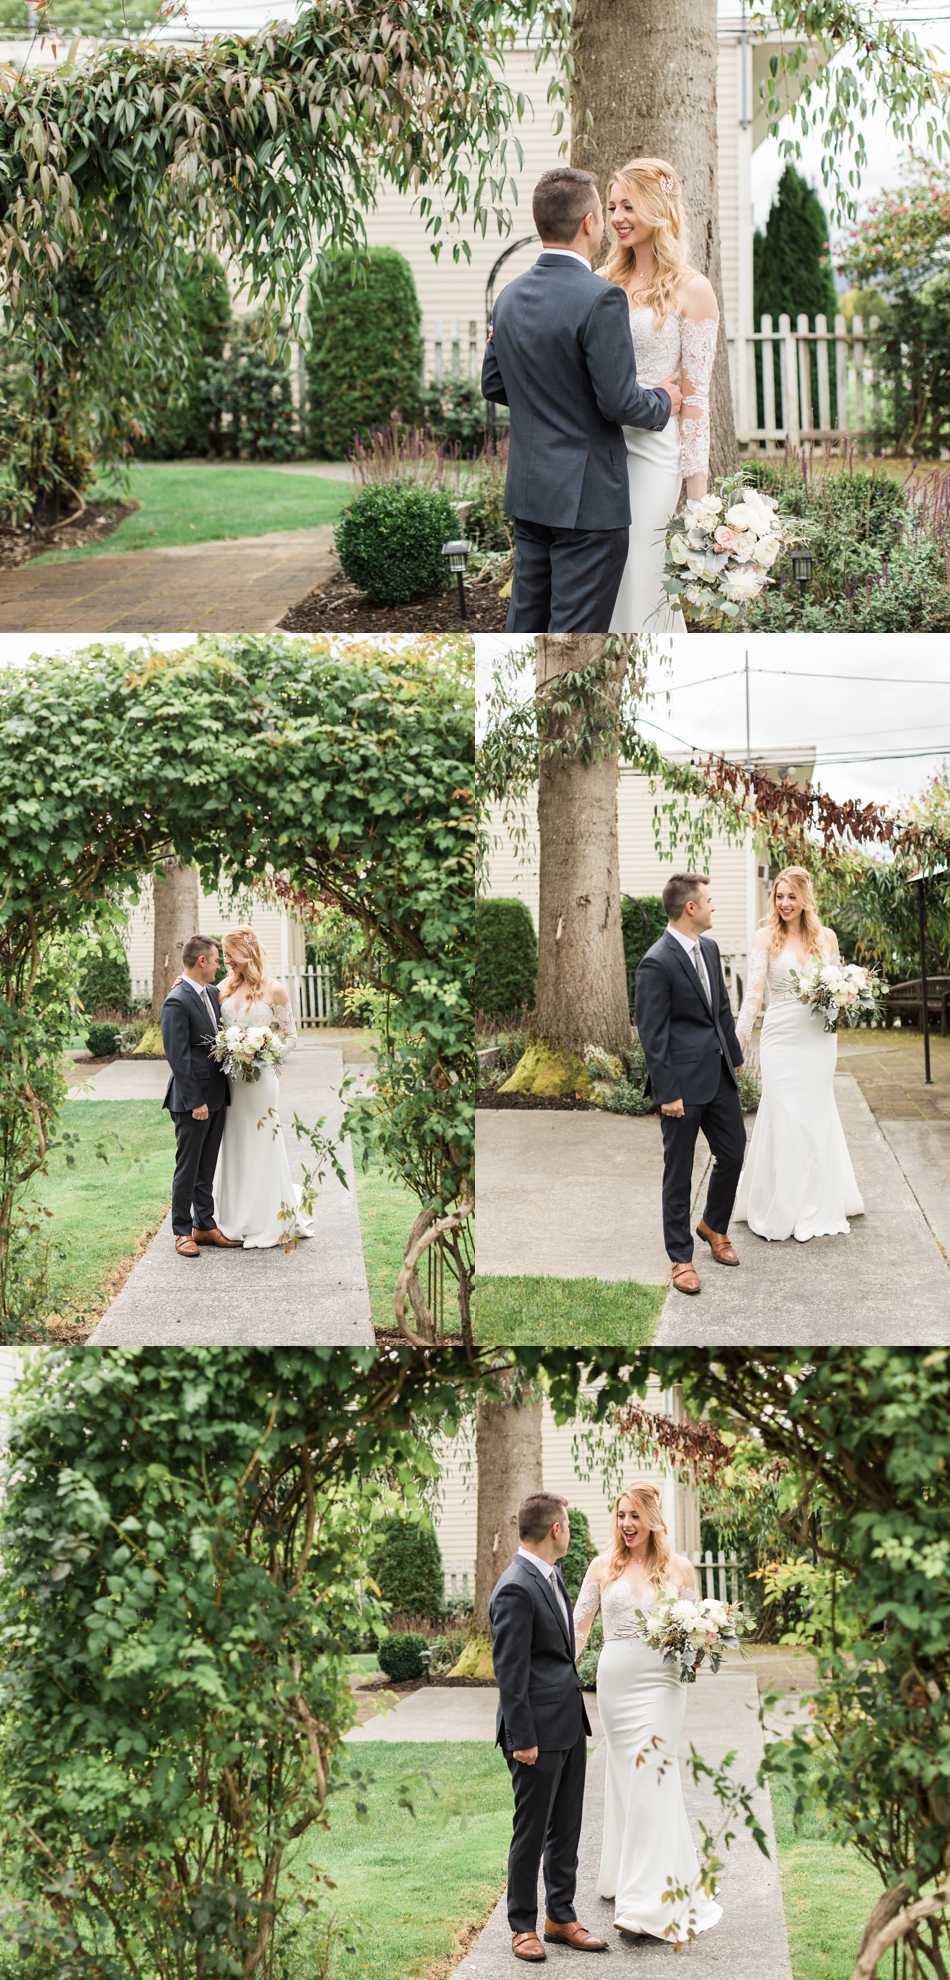 Photo of bride and groom at an intimate wedding at Belle Chapel in Snohomish, a wedding venue near Seattle. | Joanna Monger Photography | Snohomish & Seattle Photographer